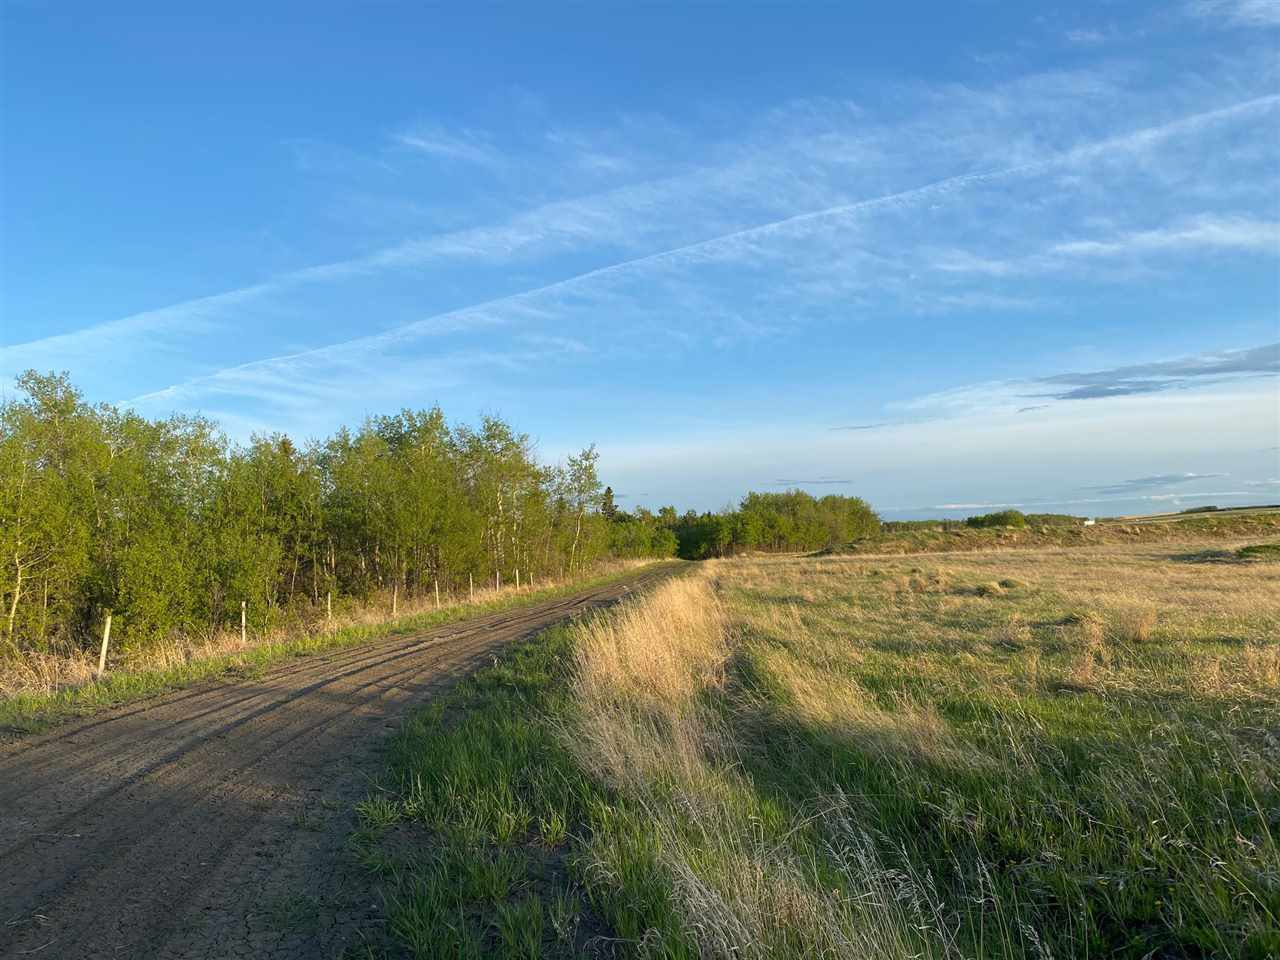 Main Photo: ROSE PRAIRIE ROAD in Fort St. John: Fort St. John - Rural W 100th Land for sale (Fort St. John (Zone 60))  : MLS®# R2460021